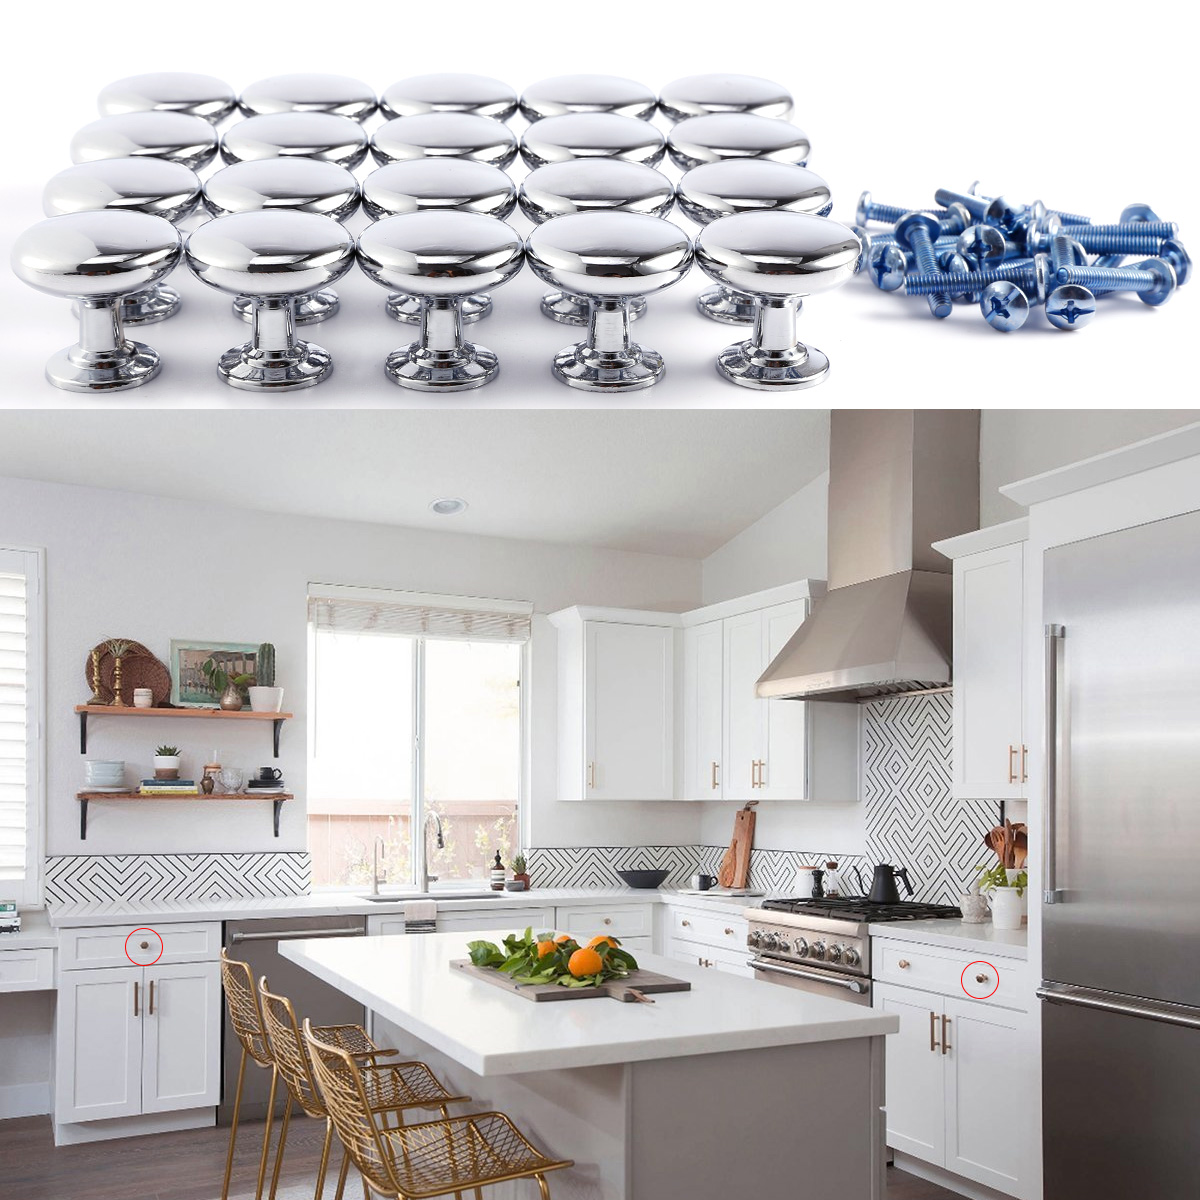 20 Chrome Kitchen Cupboard Cabinet Door Drawer Knobs Pull Mushroom 2 Finishes